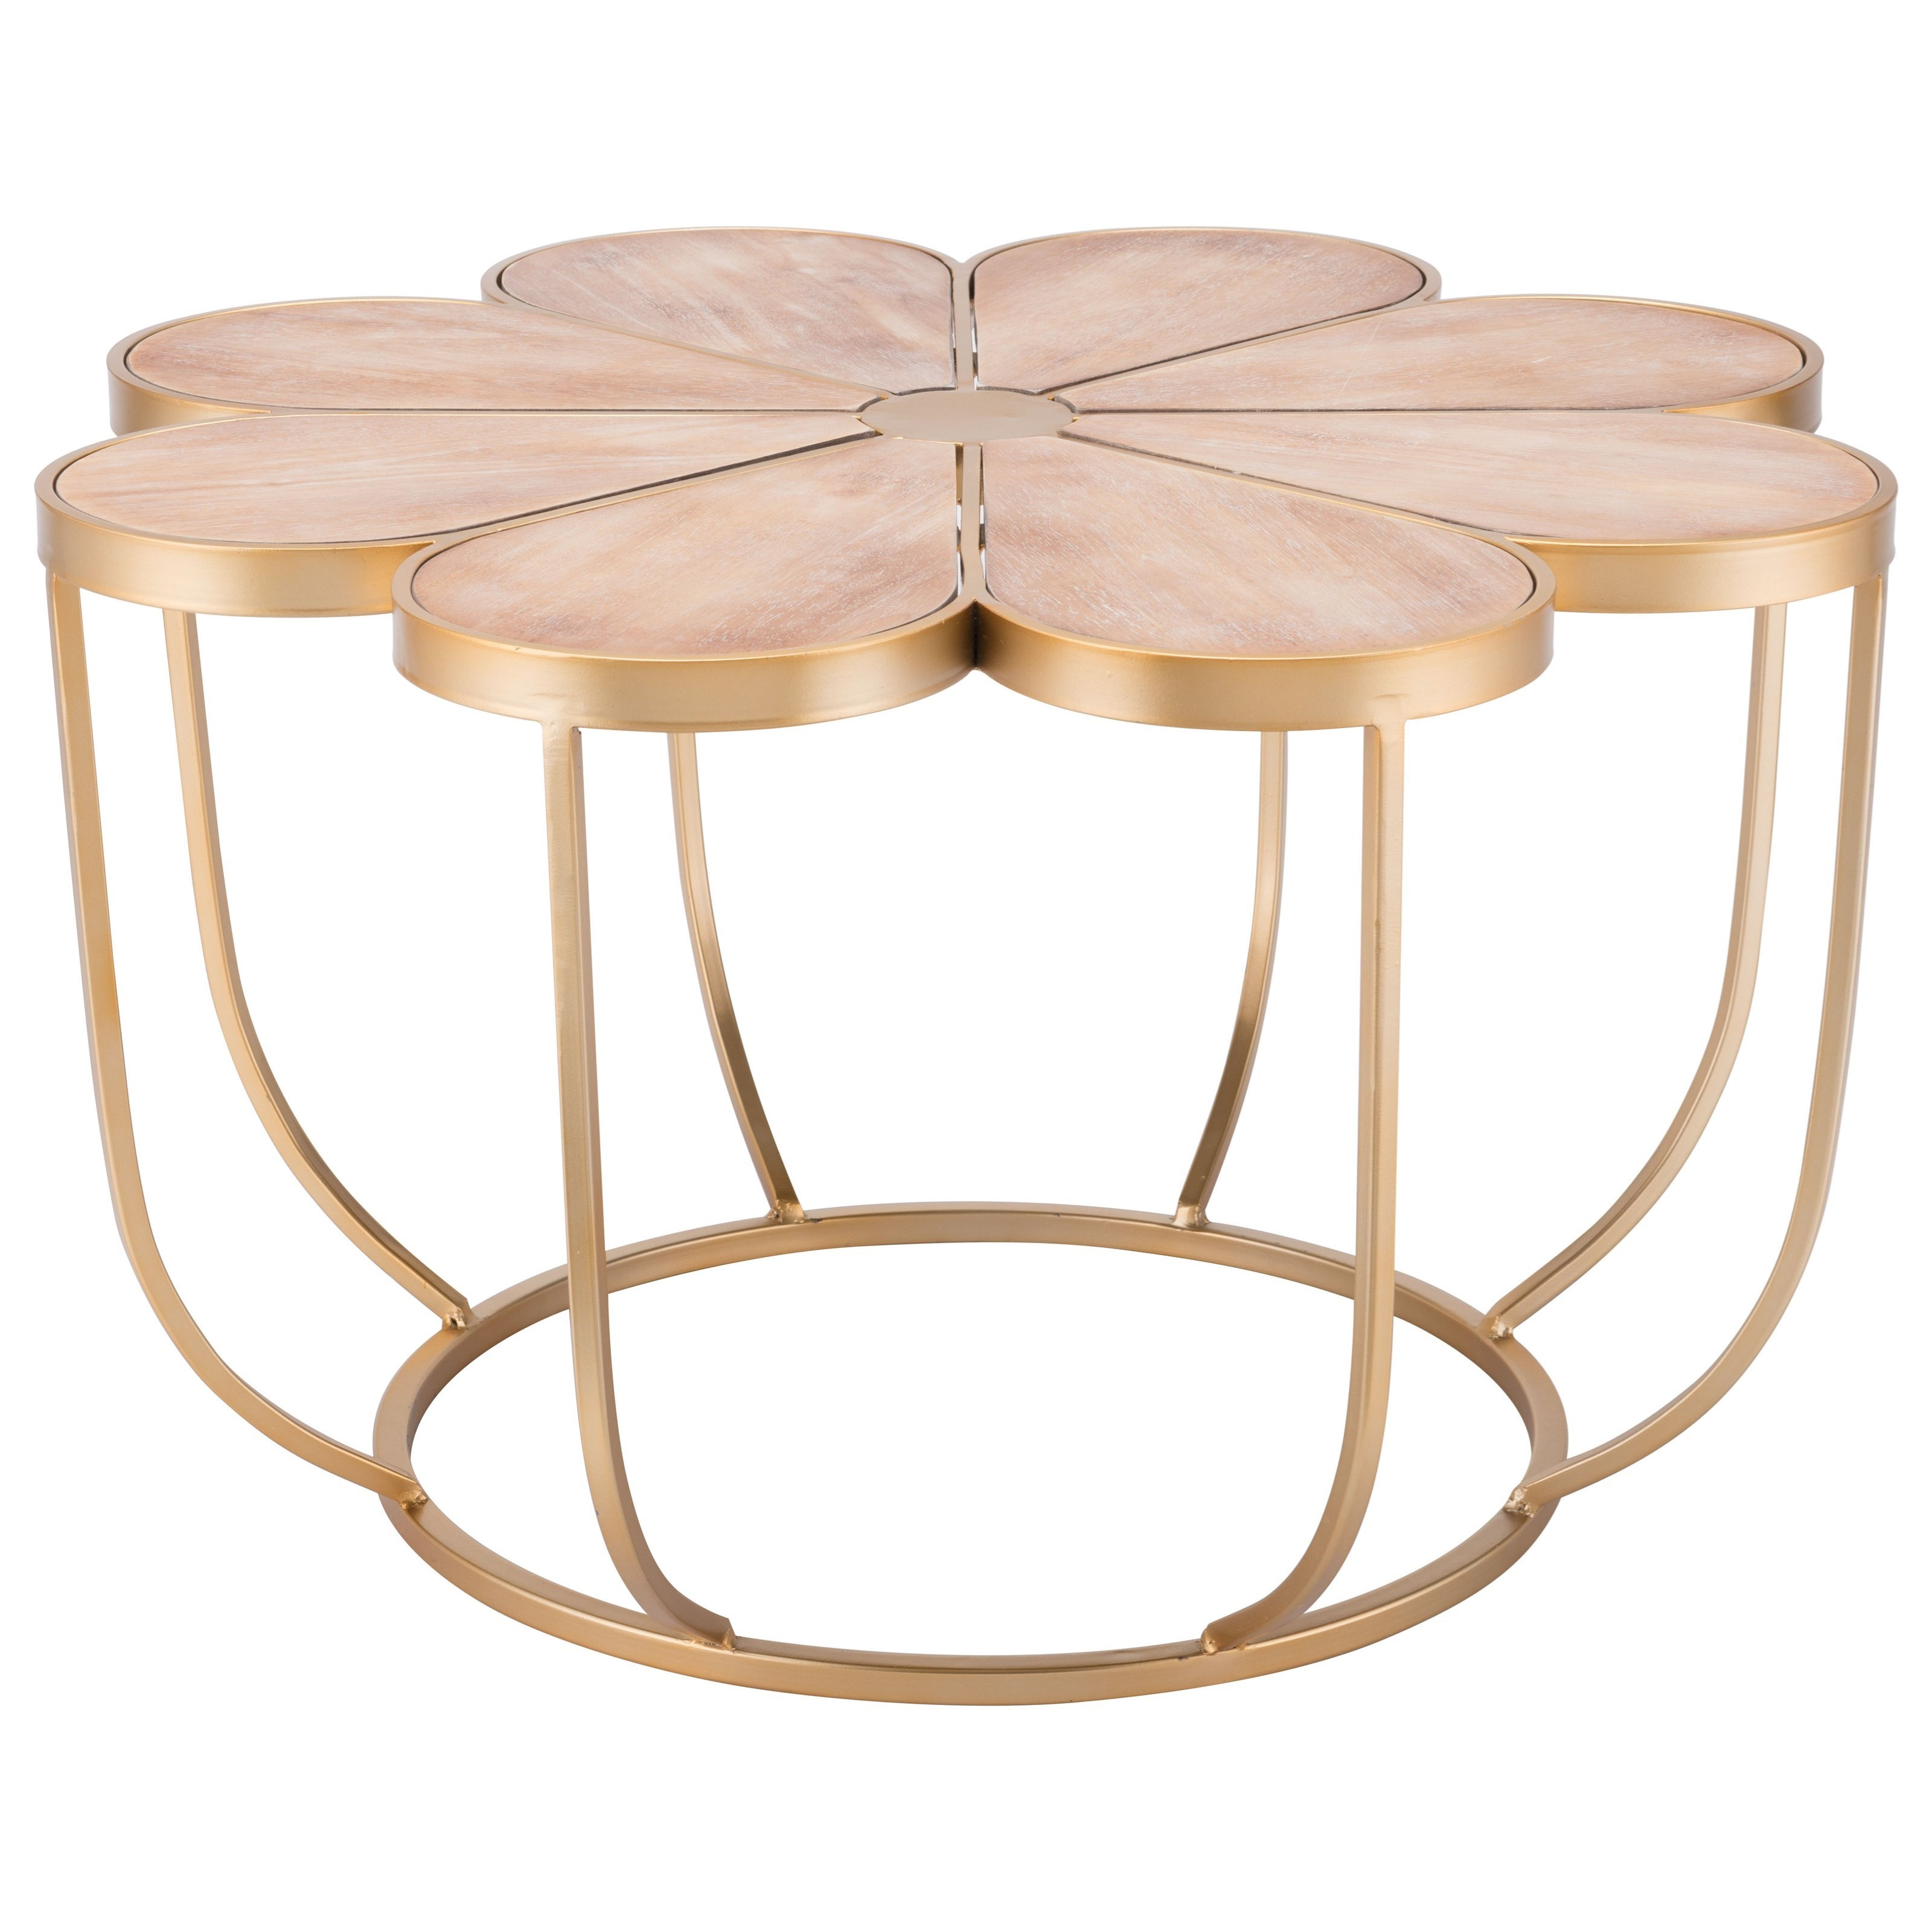 Zuo Accent Tables Margarita Table - Item Number: A11050